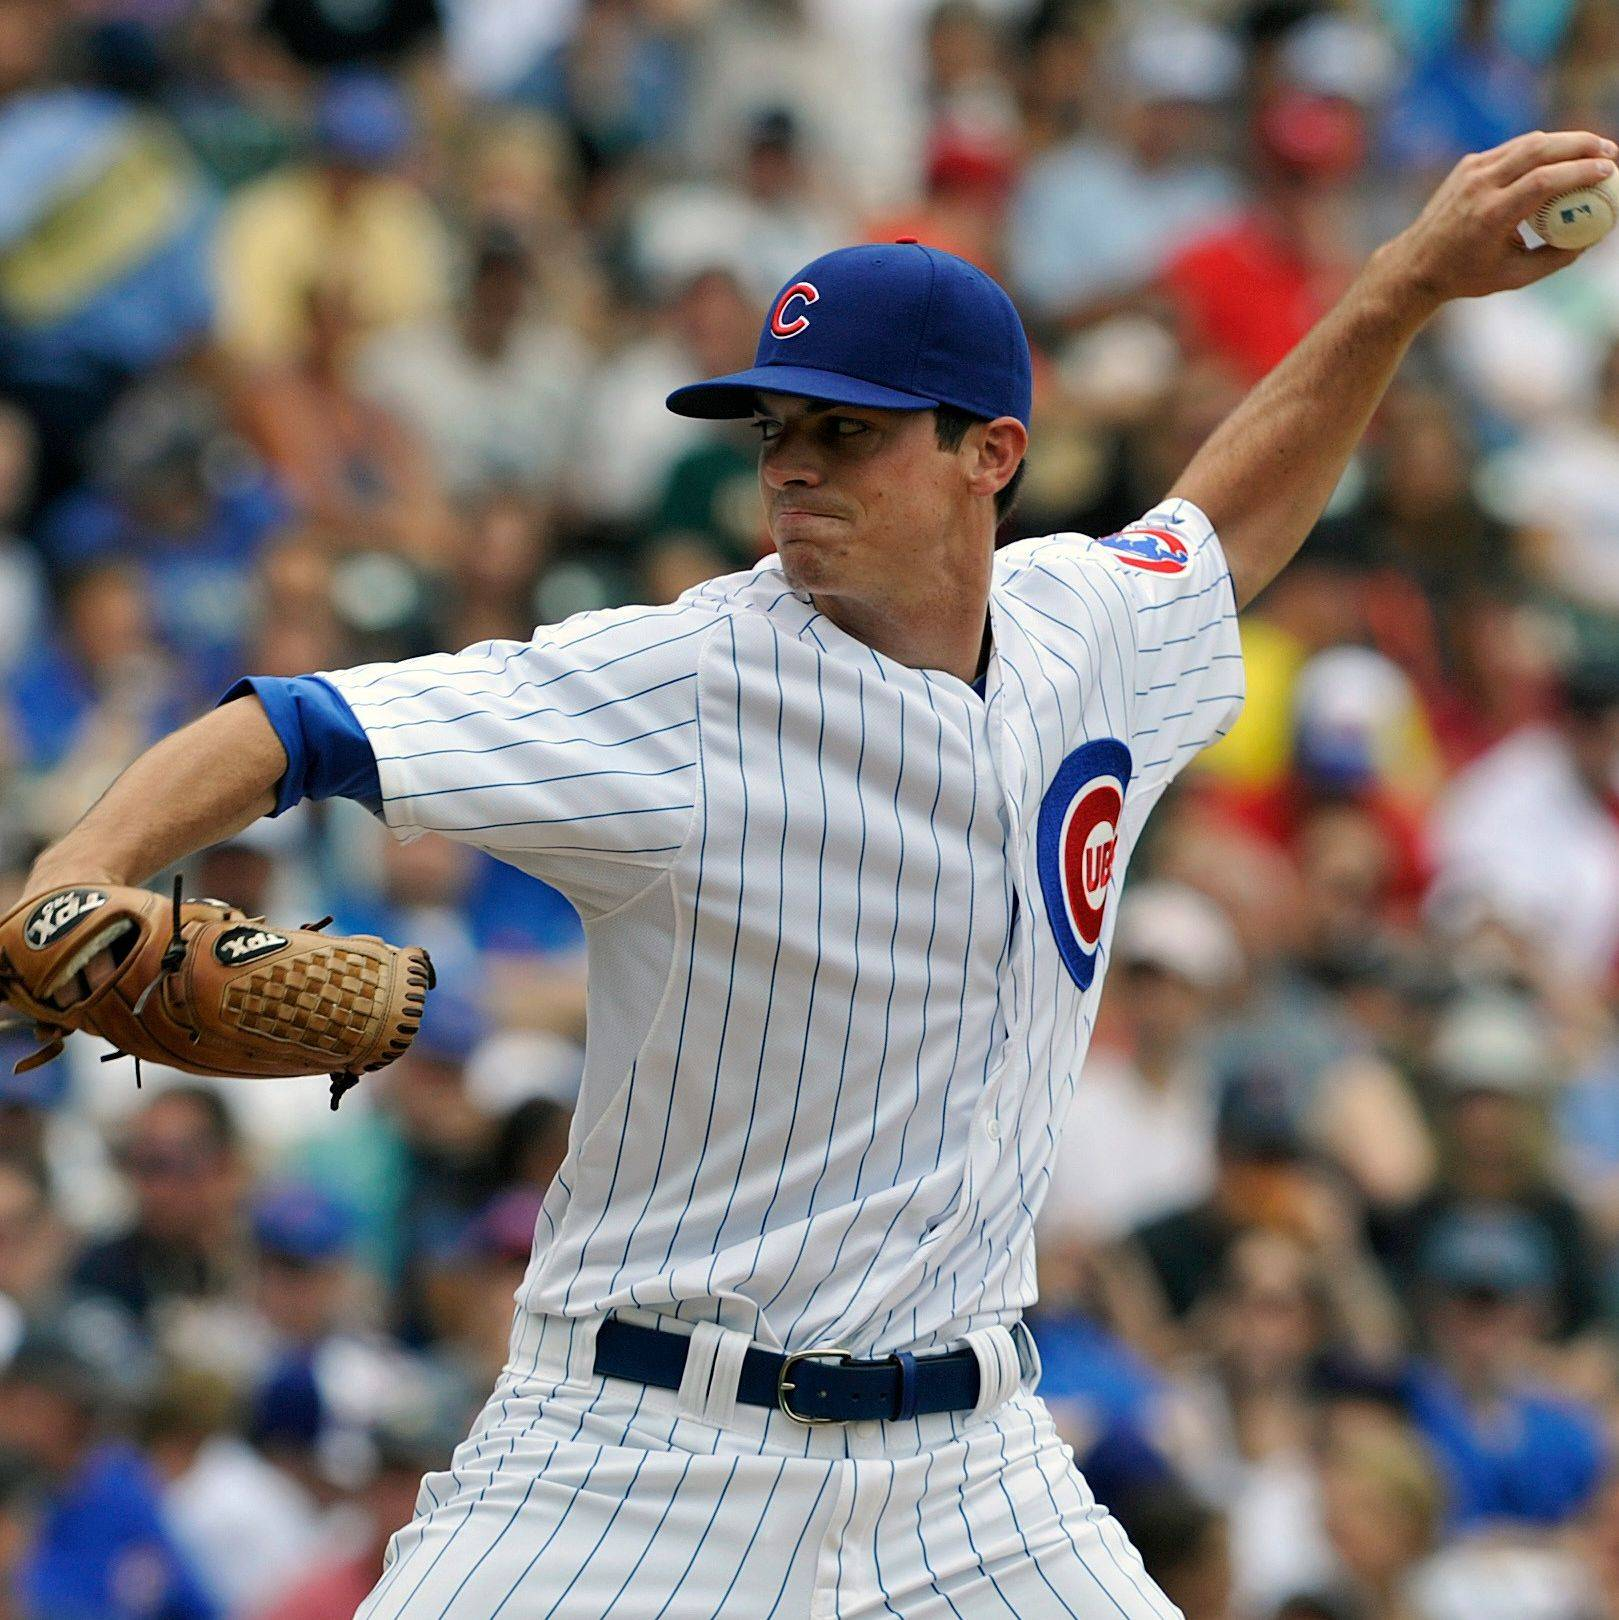 Brooks Raley pitches against the Reds during the first inning of the Cubs' 3-0 loss Sunday at Wrigley Field.